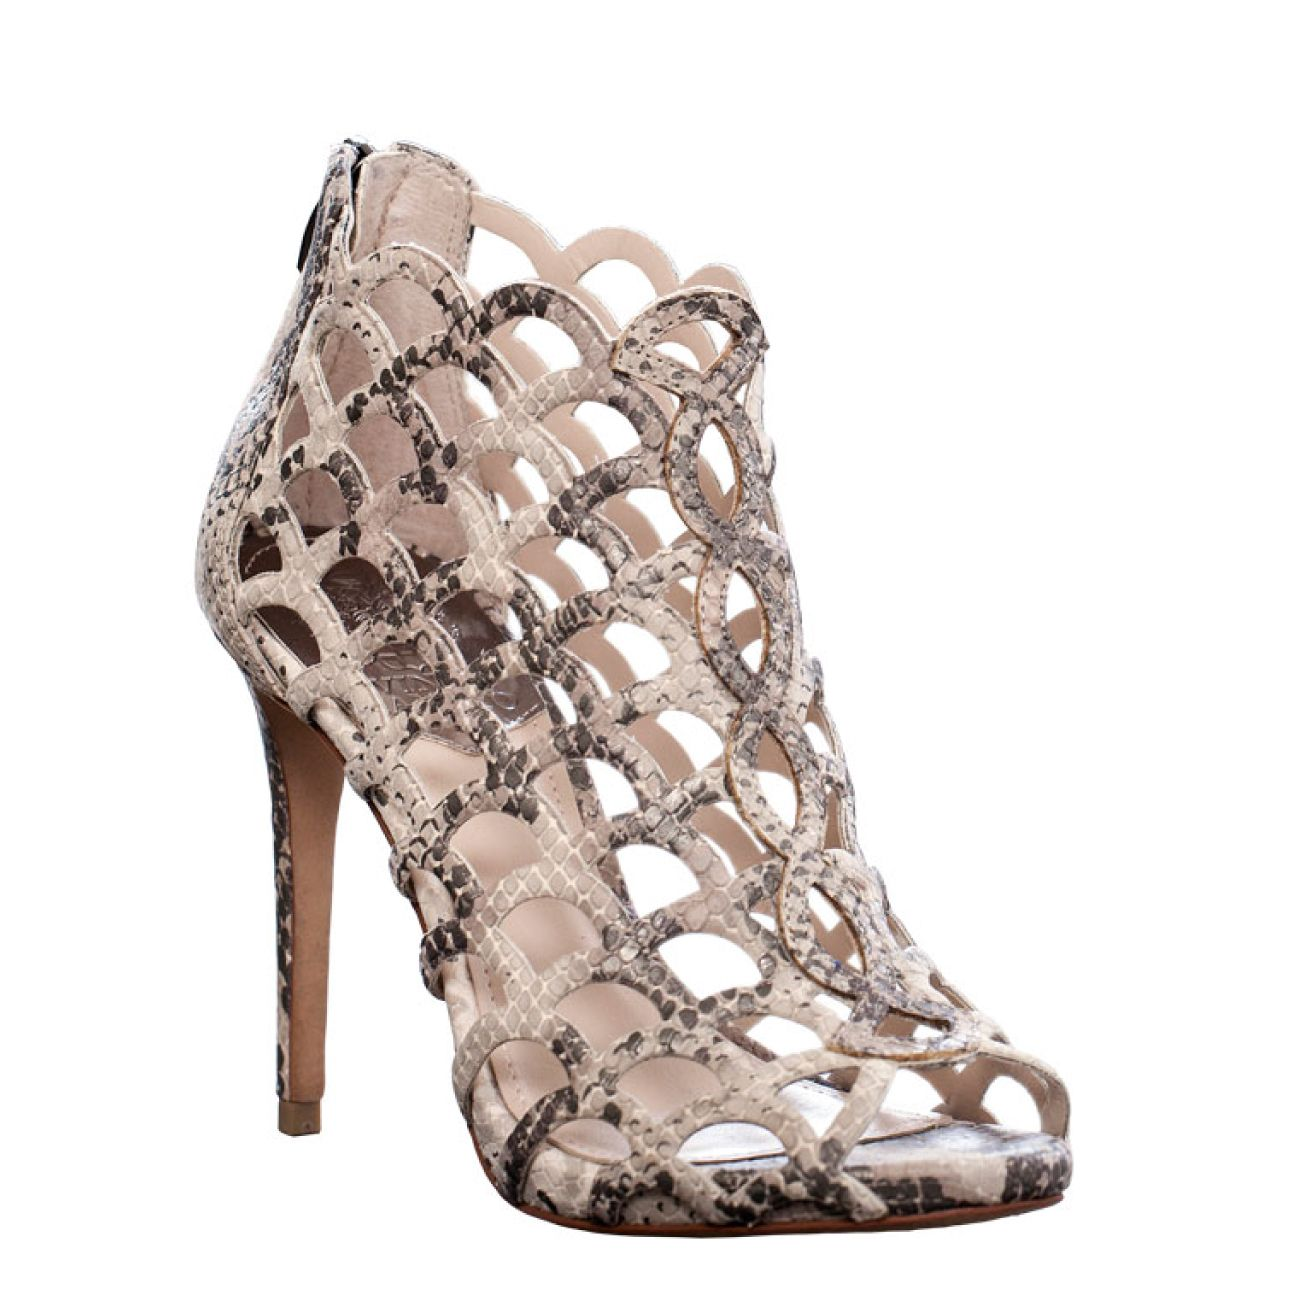 Vince Camuto - #114310890 - $160.00  Love!